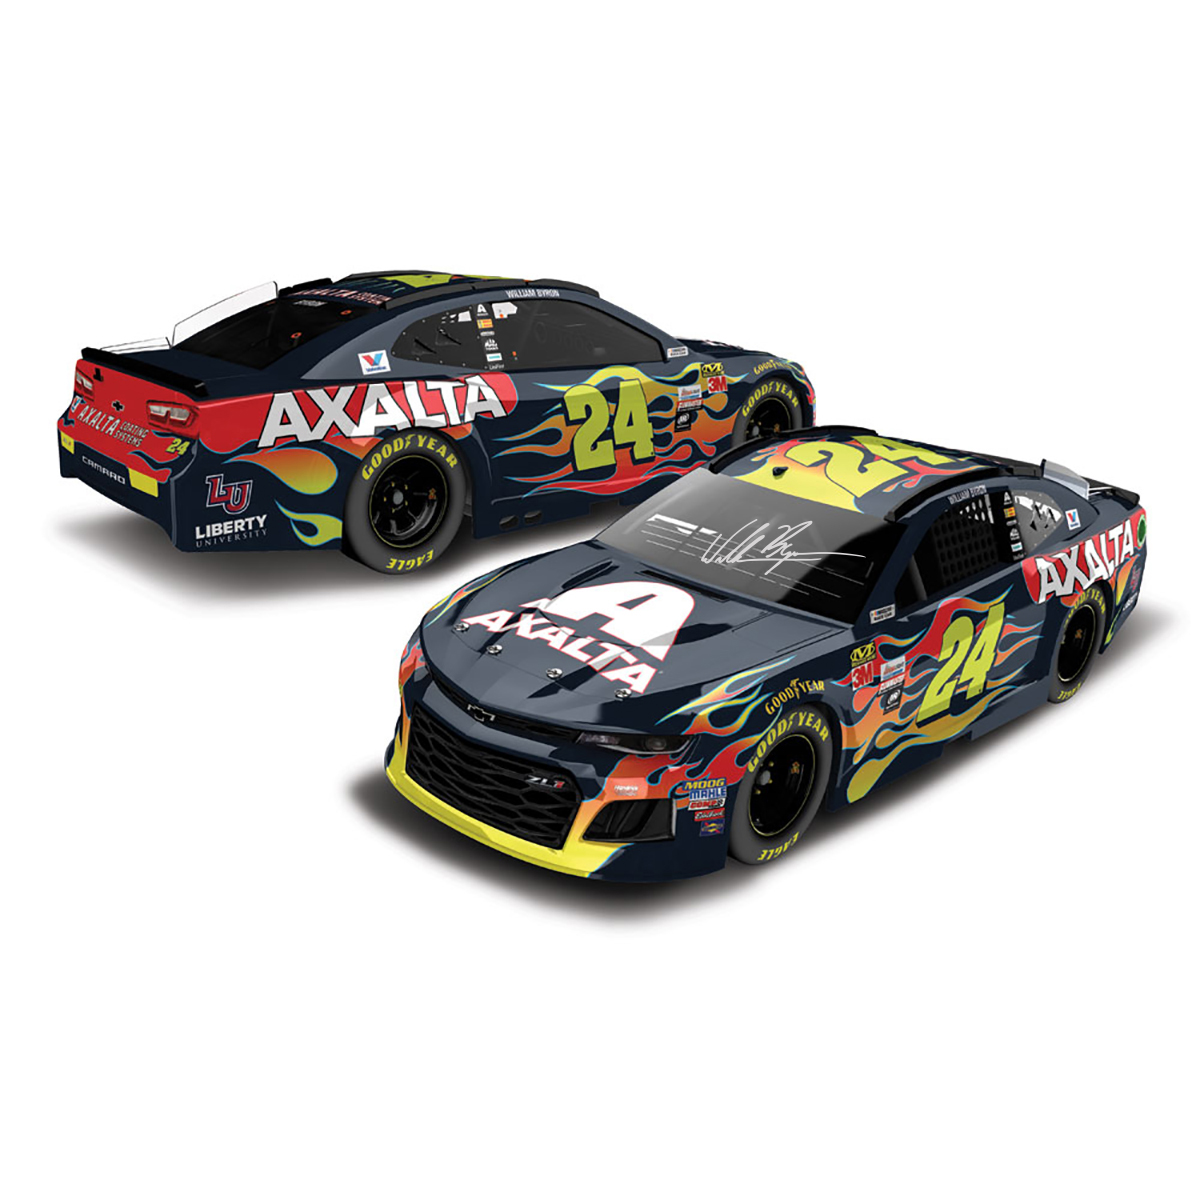 AUTOGRAPHED William Byron 2018 NASCAR Cup Series No. 24 Axalta HO 1:24 Die-Cast